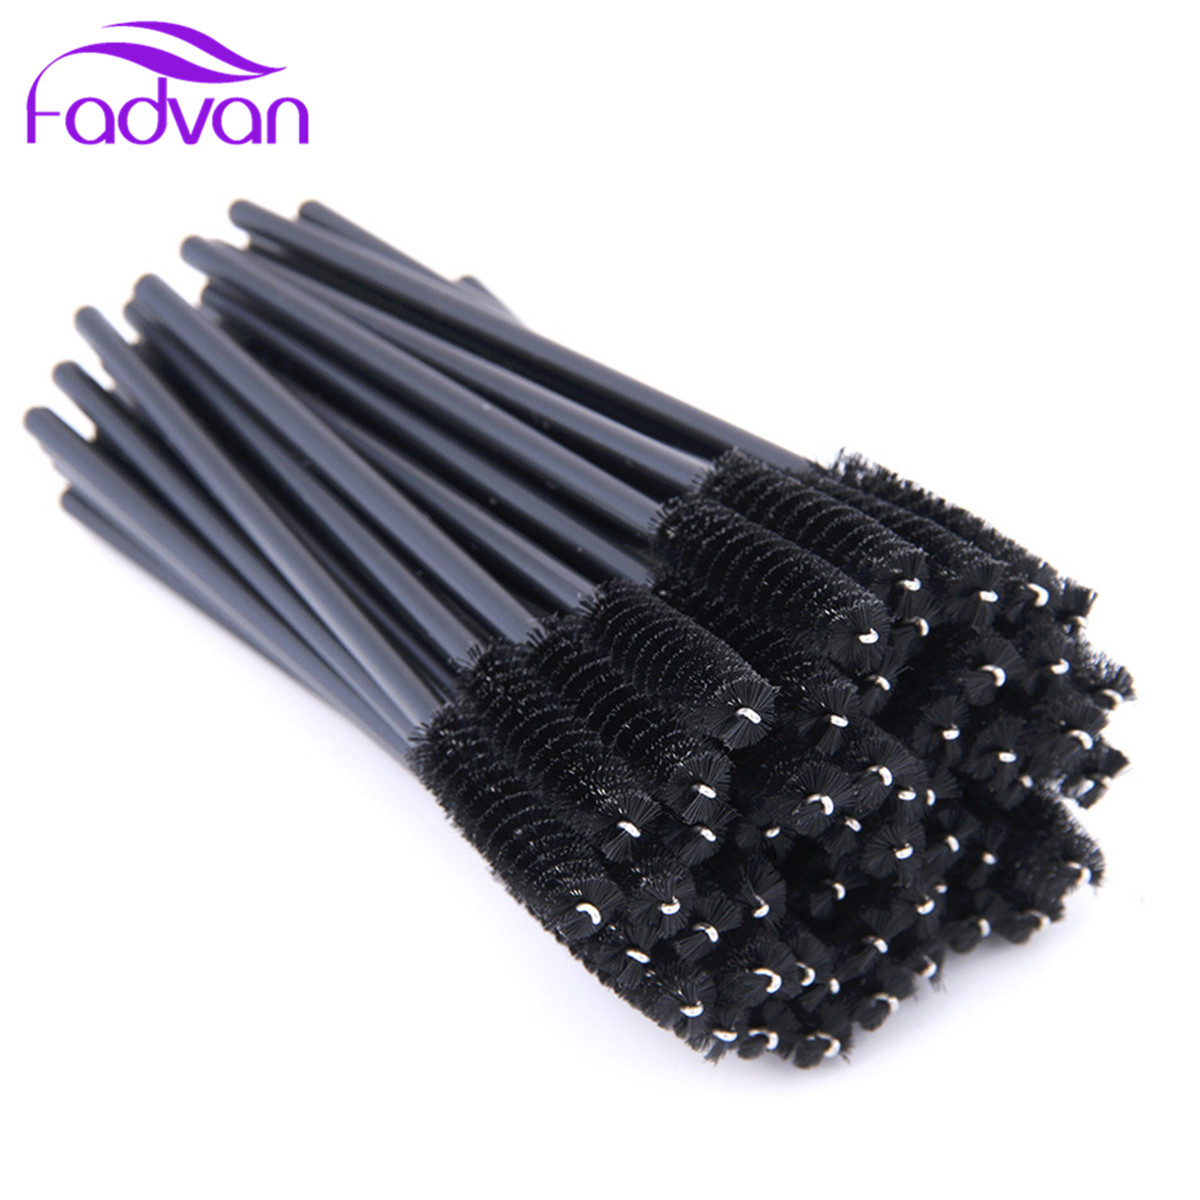 250 Pcs/Set Mascara Wands Applicator Spoolers Eye Lashes Brushes Eyelash Comb Brushes Spoolers Makeup Eyelash Eye Lash Brush цена